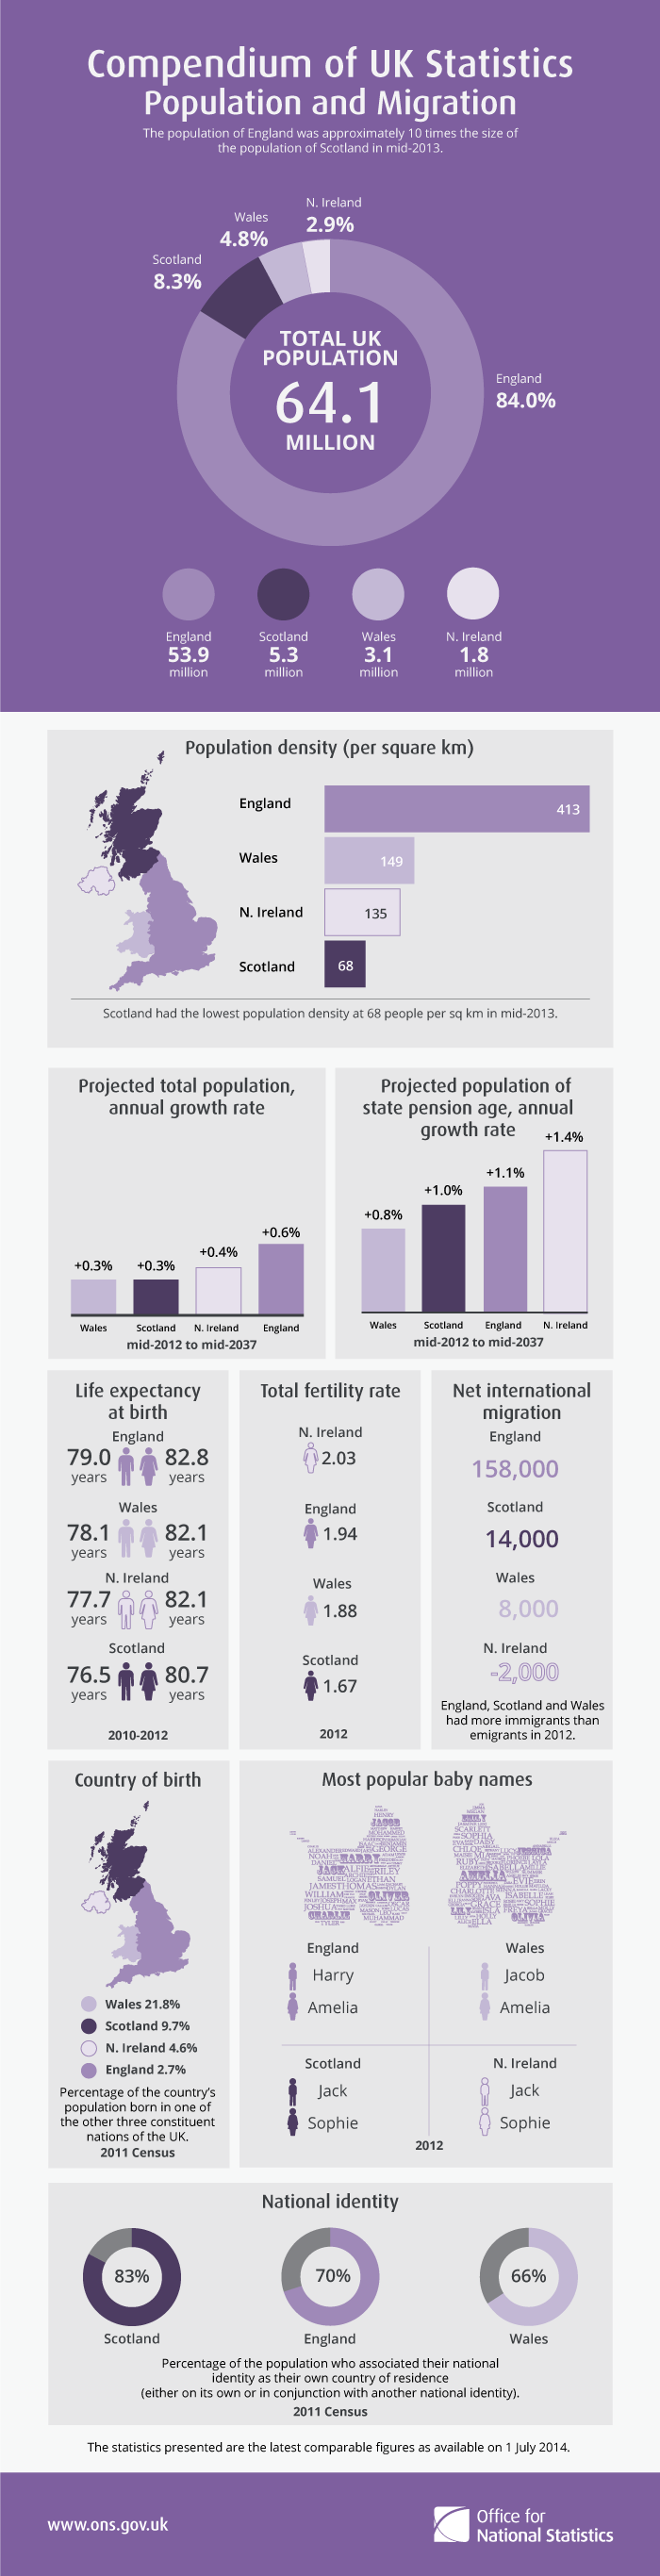 England's population was approximately 10 times the size of the population of Scotland in mid-2013